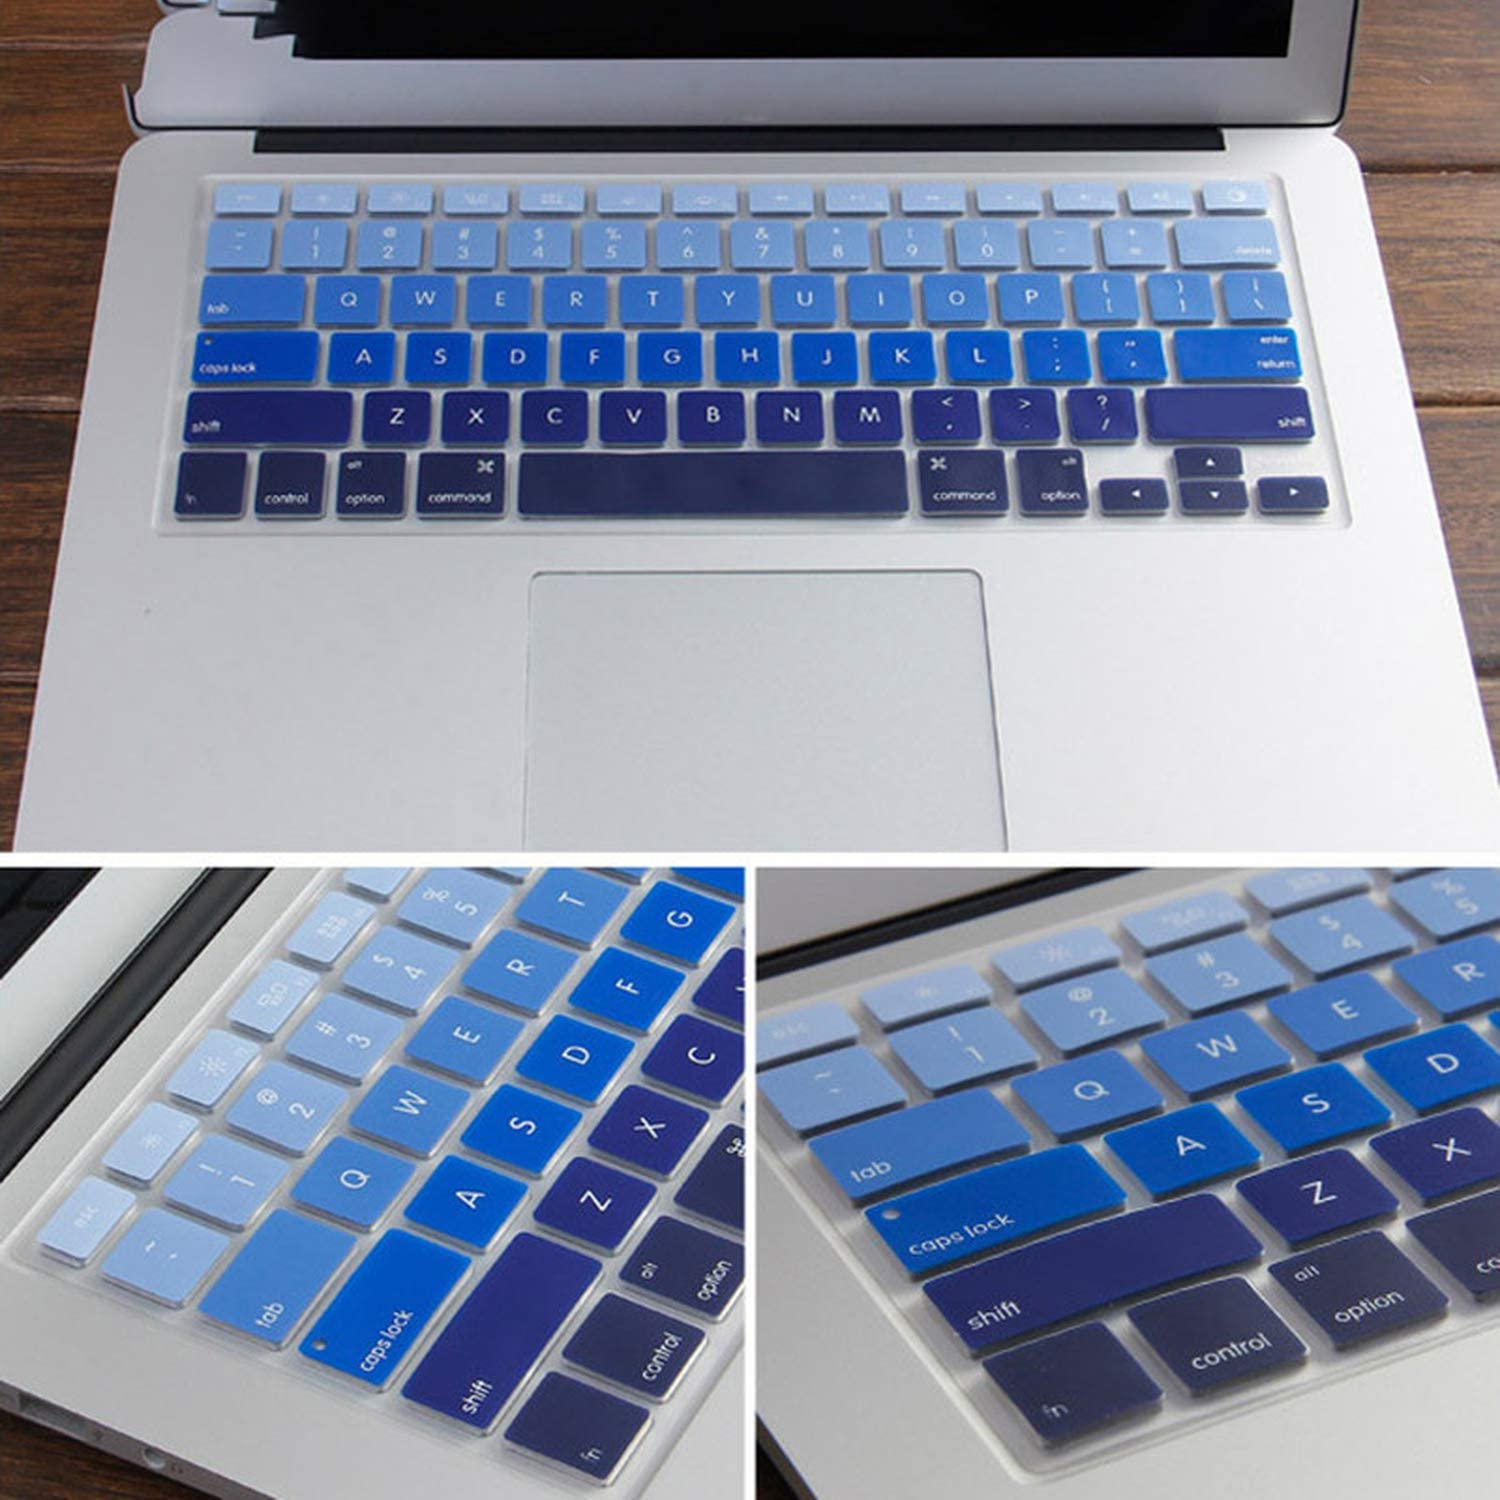 A1370 A1465 Ultra Thin Silicone Compatible for Laptop Keyboard Cover Skin Protector Compatible for MacBook Air 11 1370 A1465 Compatible for Laptop